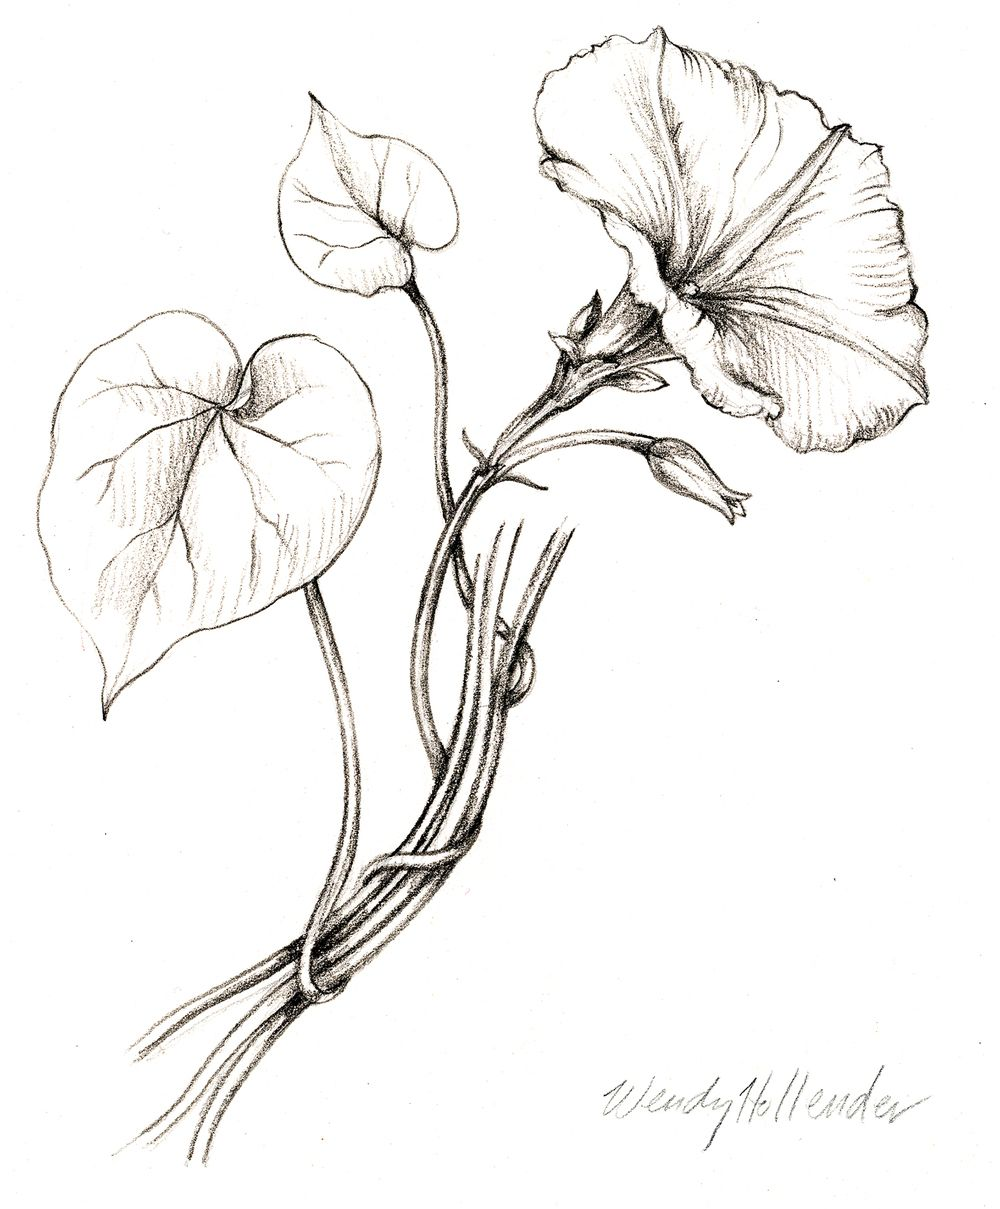 Morning Glory. From the collection of botanical